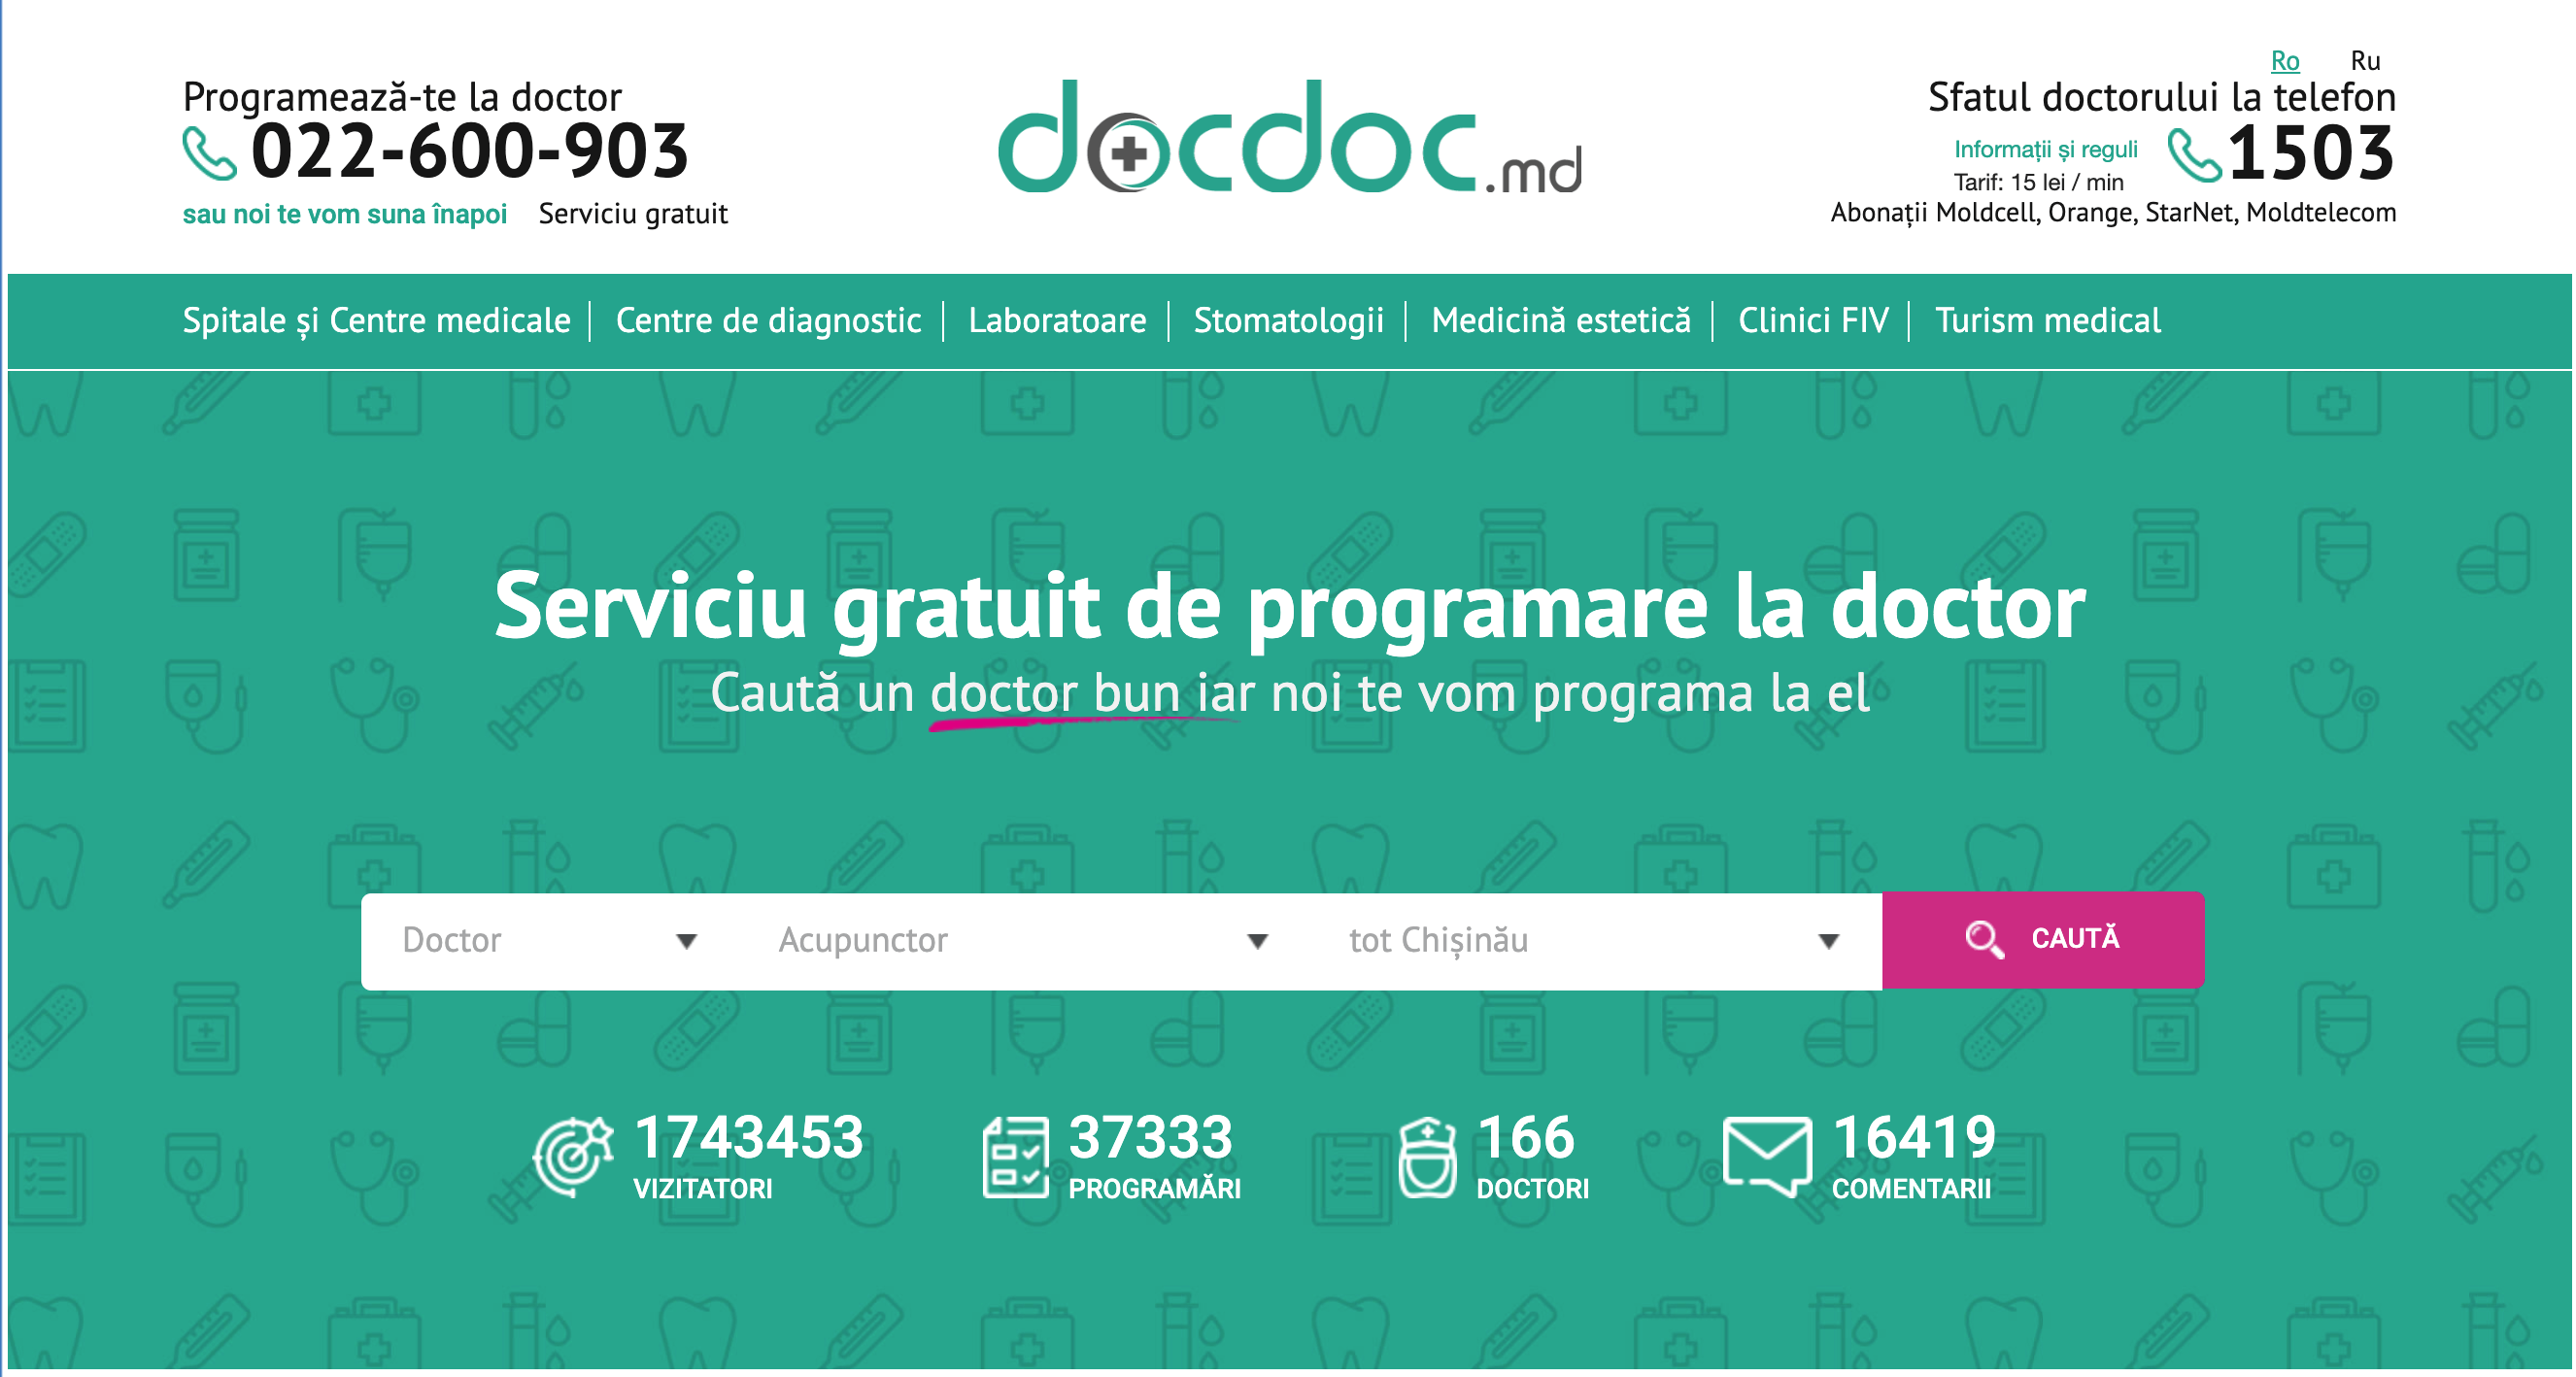 docdoc.md